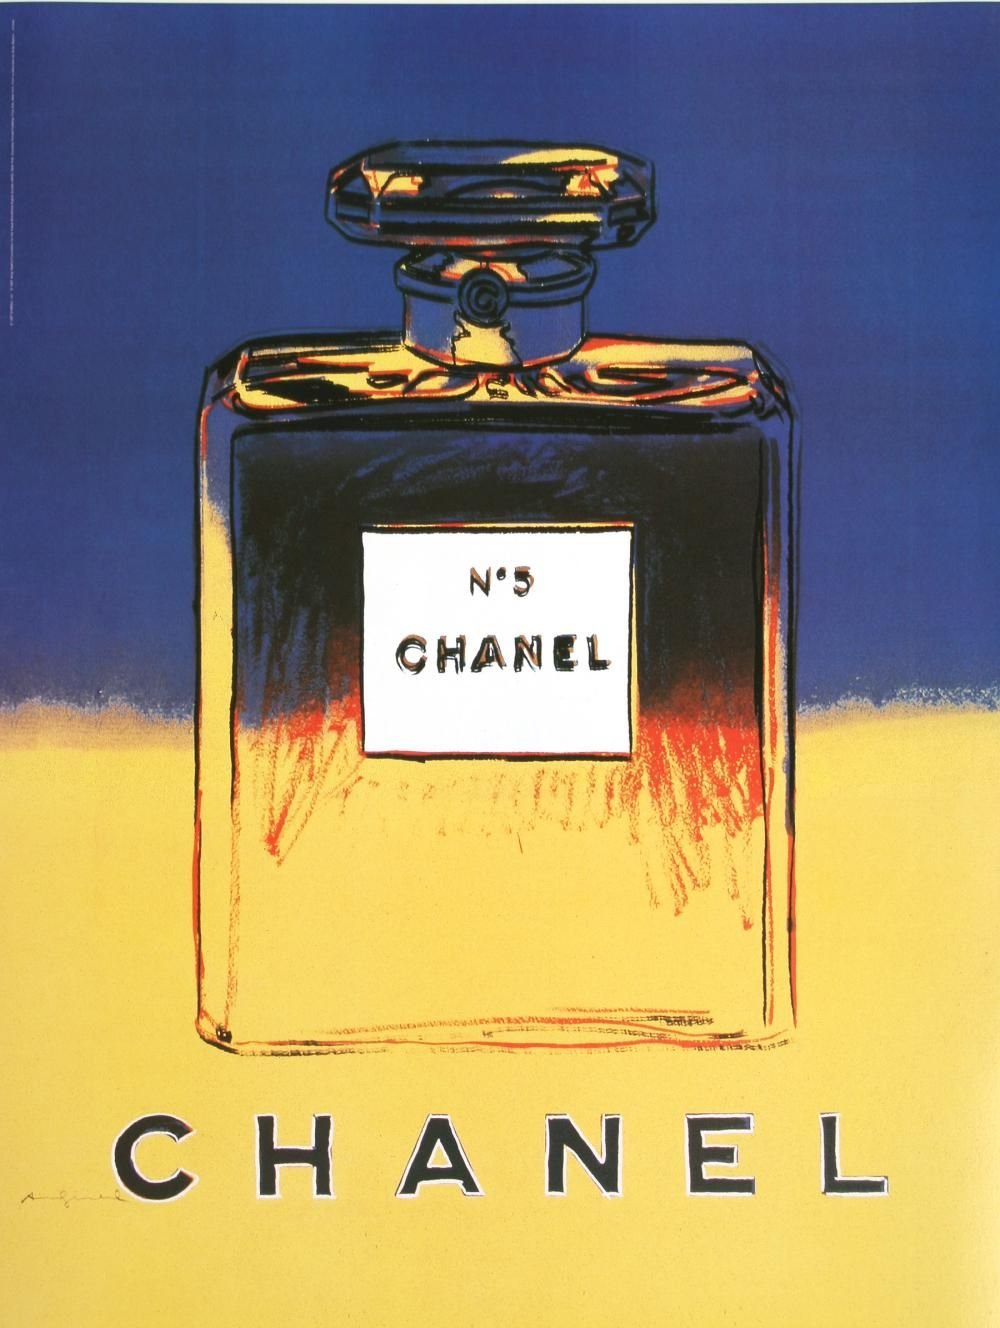 CHANEL SMALL - YELLOW BY ANDY WARHOL ORIGINAL VINTAGE POSTER #andywarhol